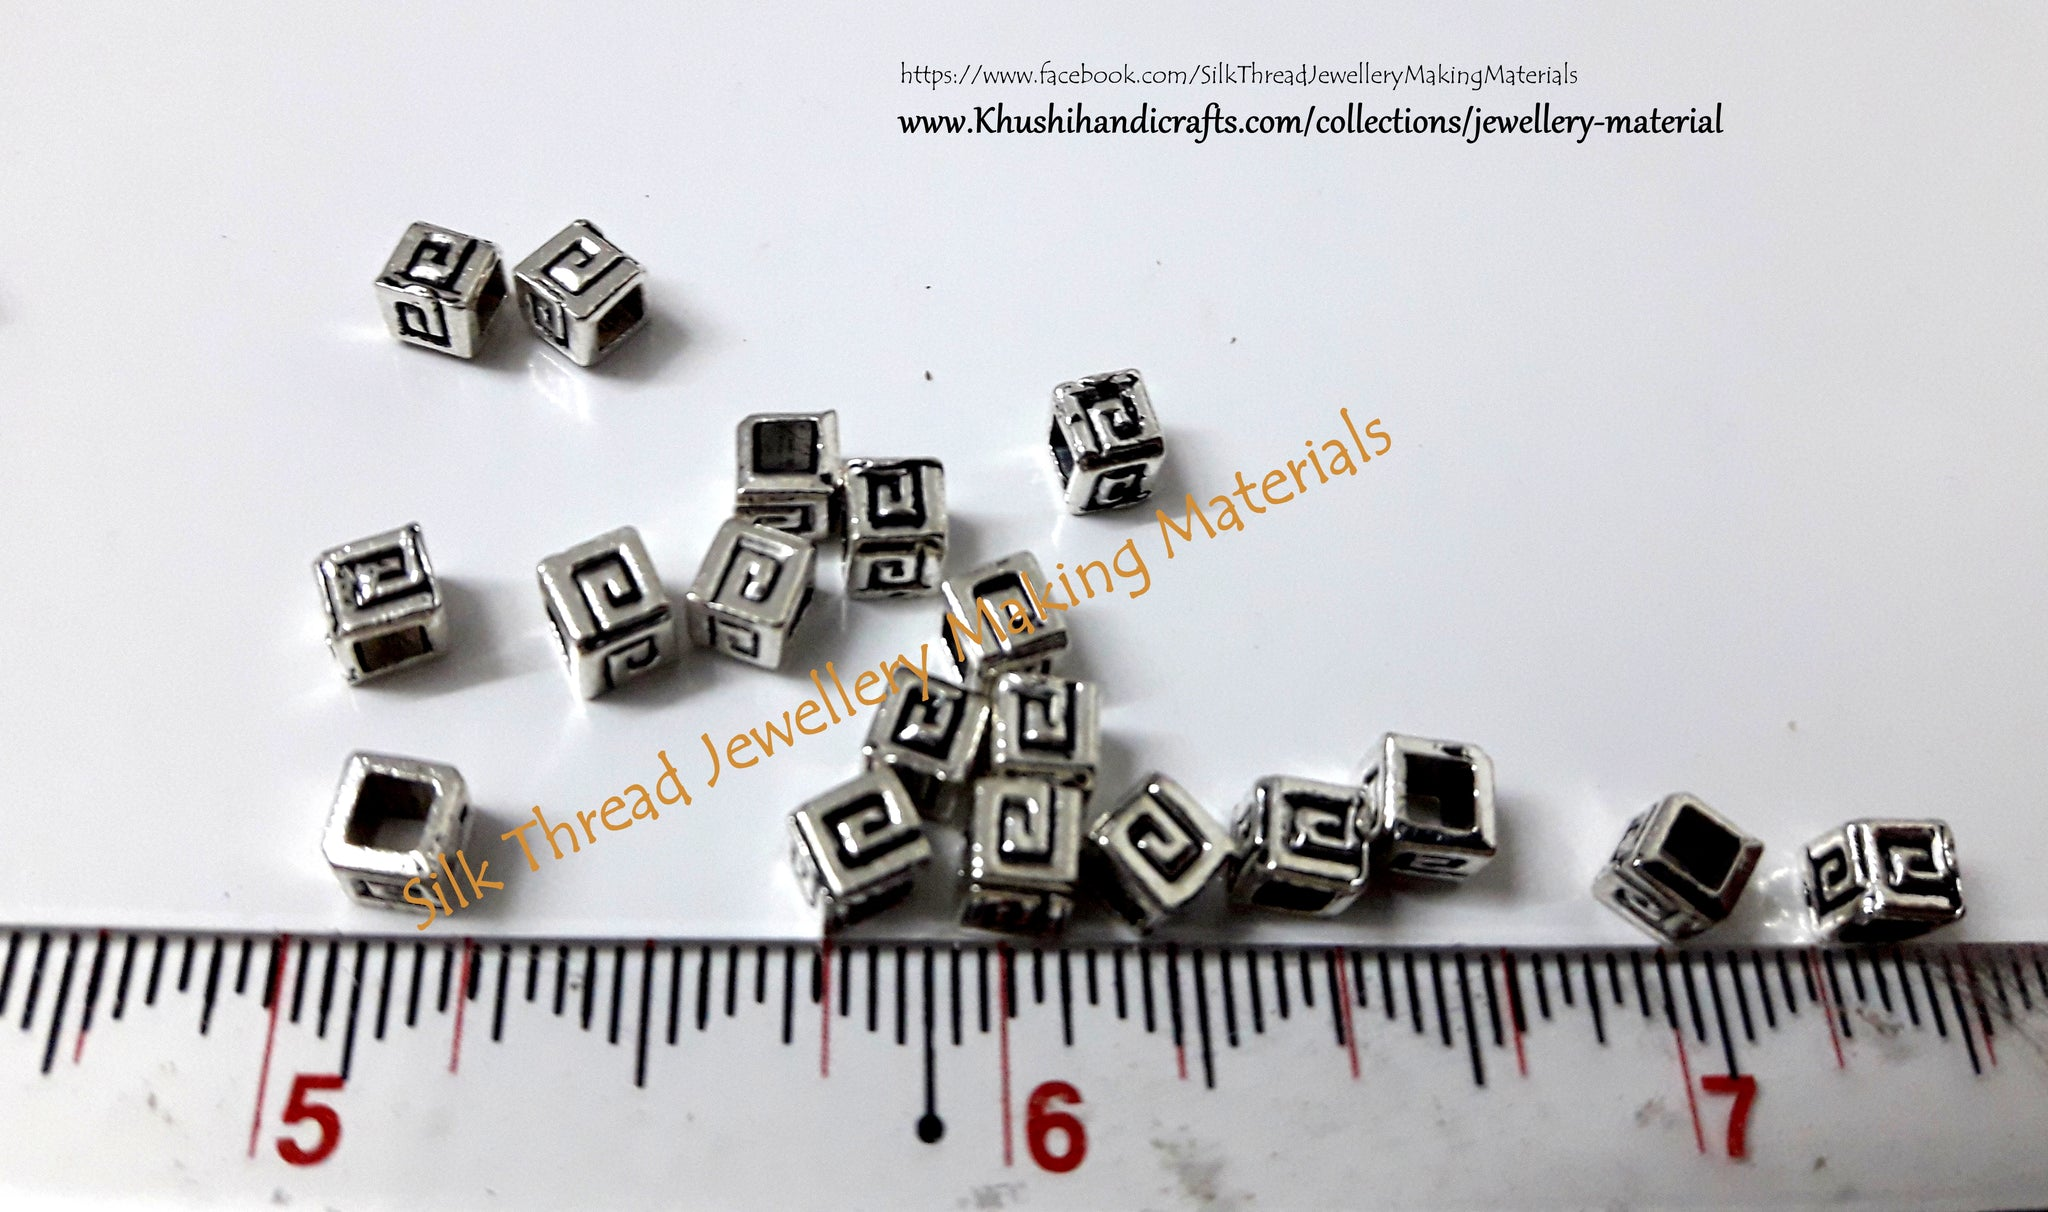 Buy Rectangular spacer beads online in India | Jewelry Making Materials